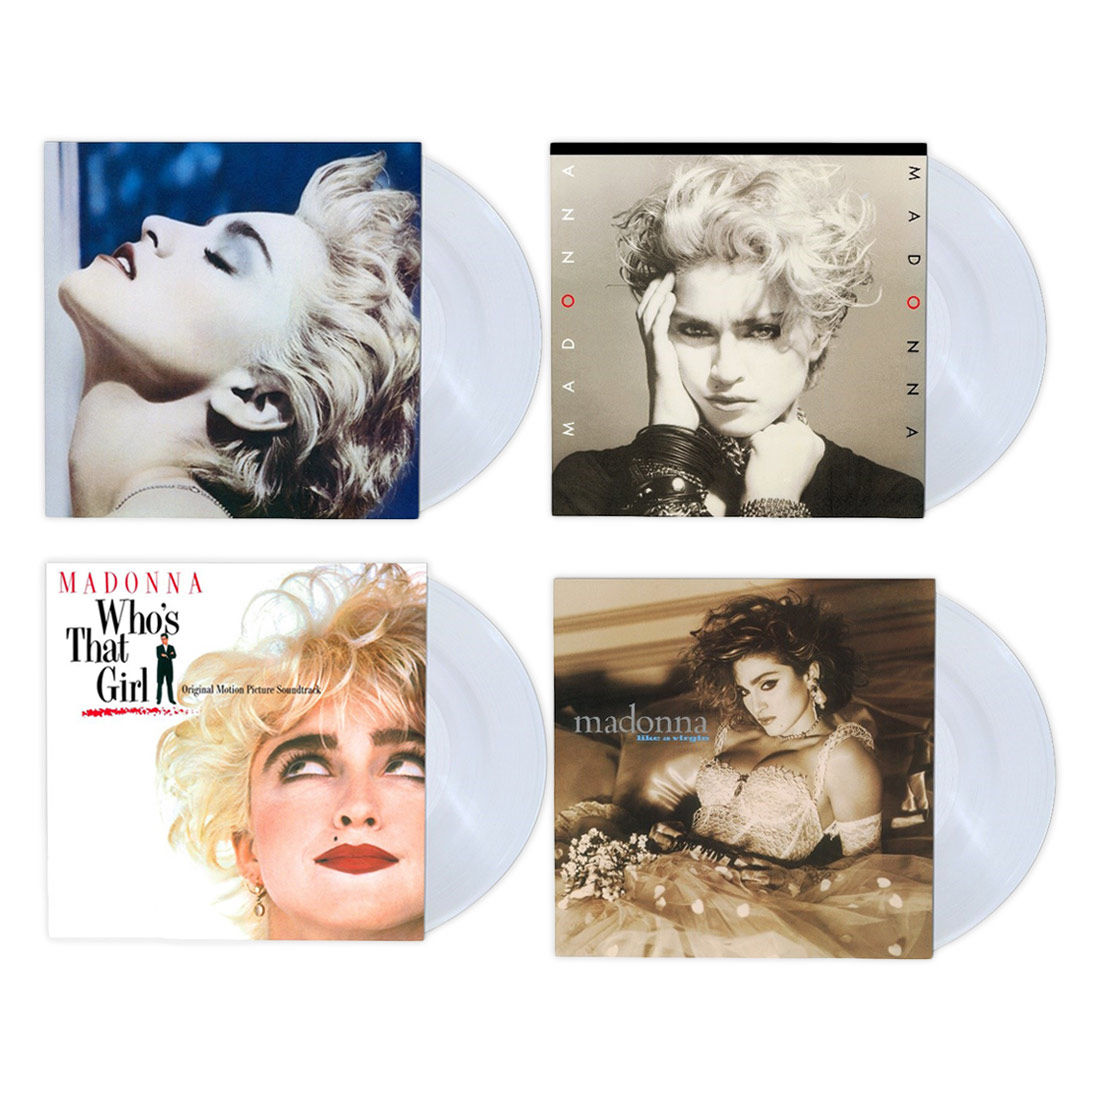 New release Madonna